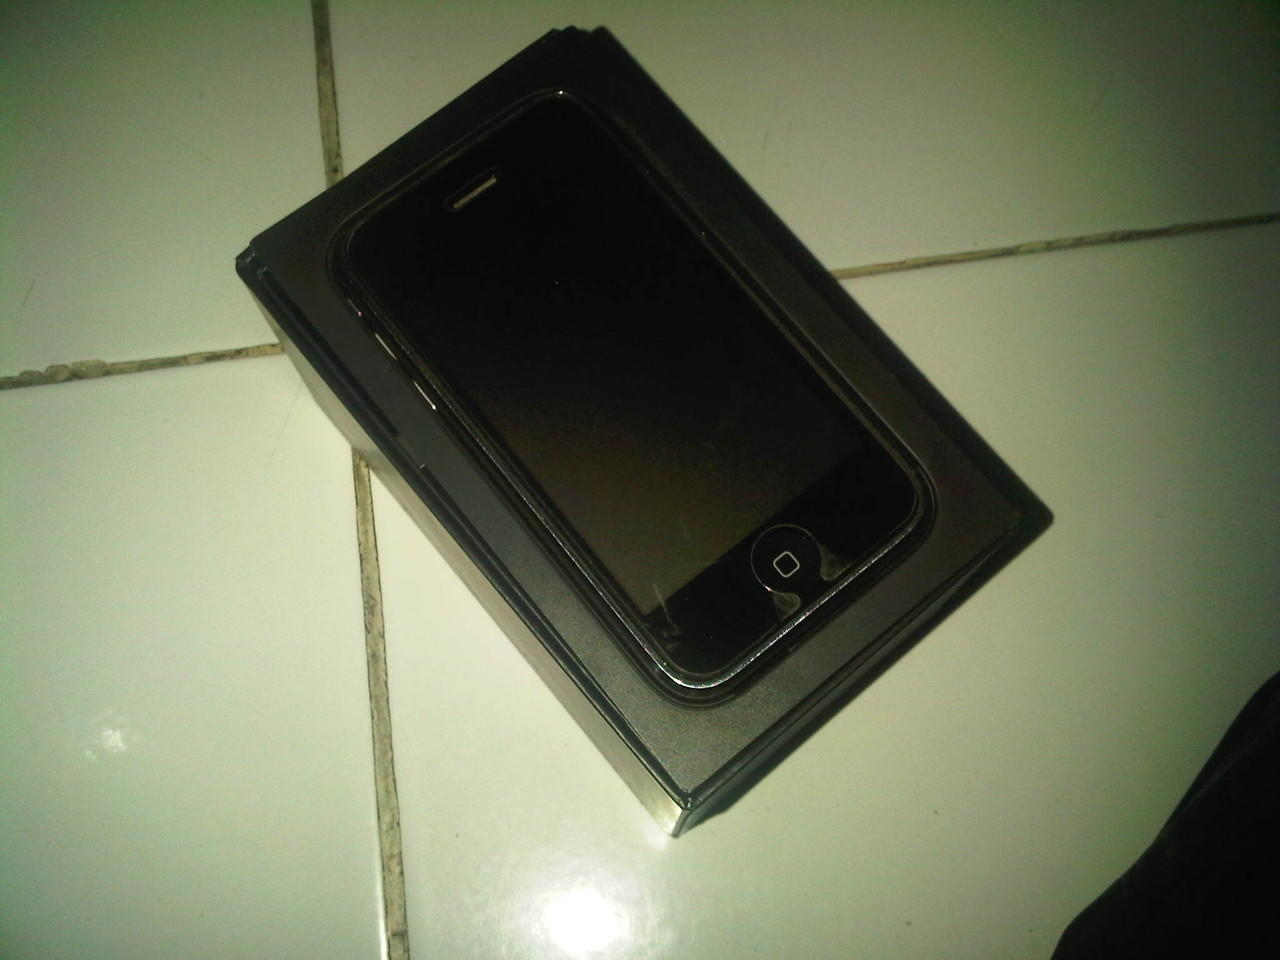 Iphone 3G 16 GB Hitam mulus